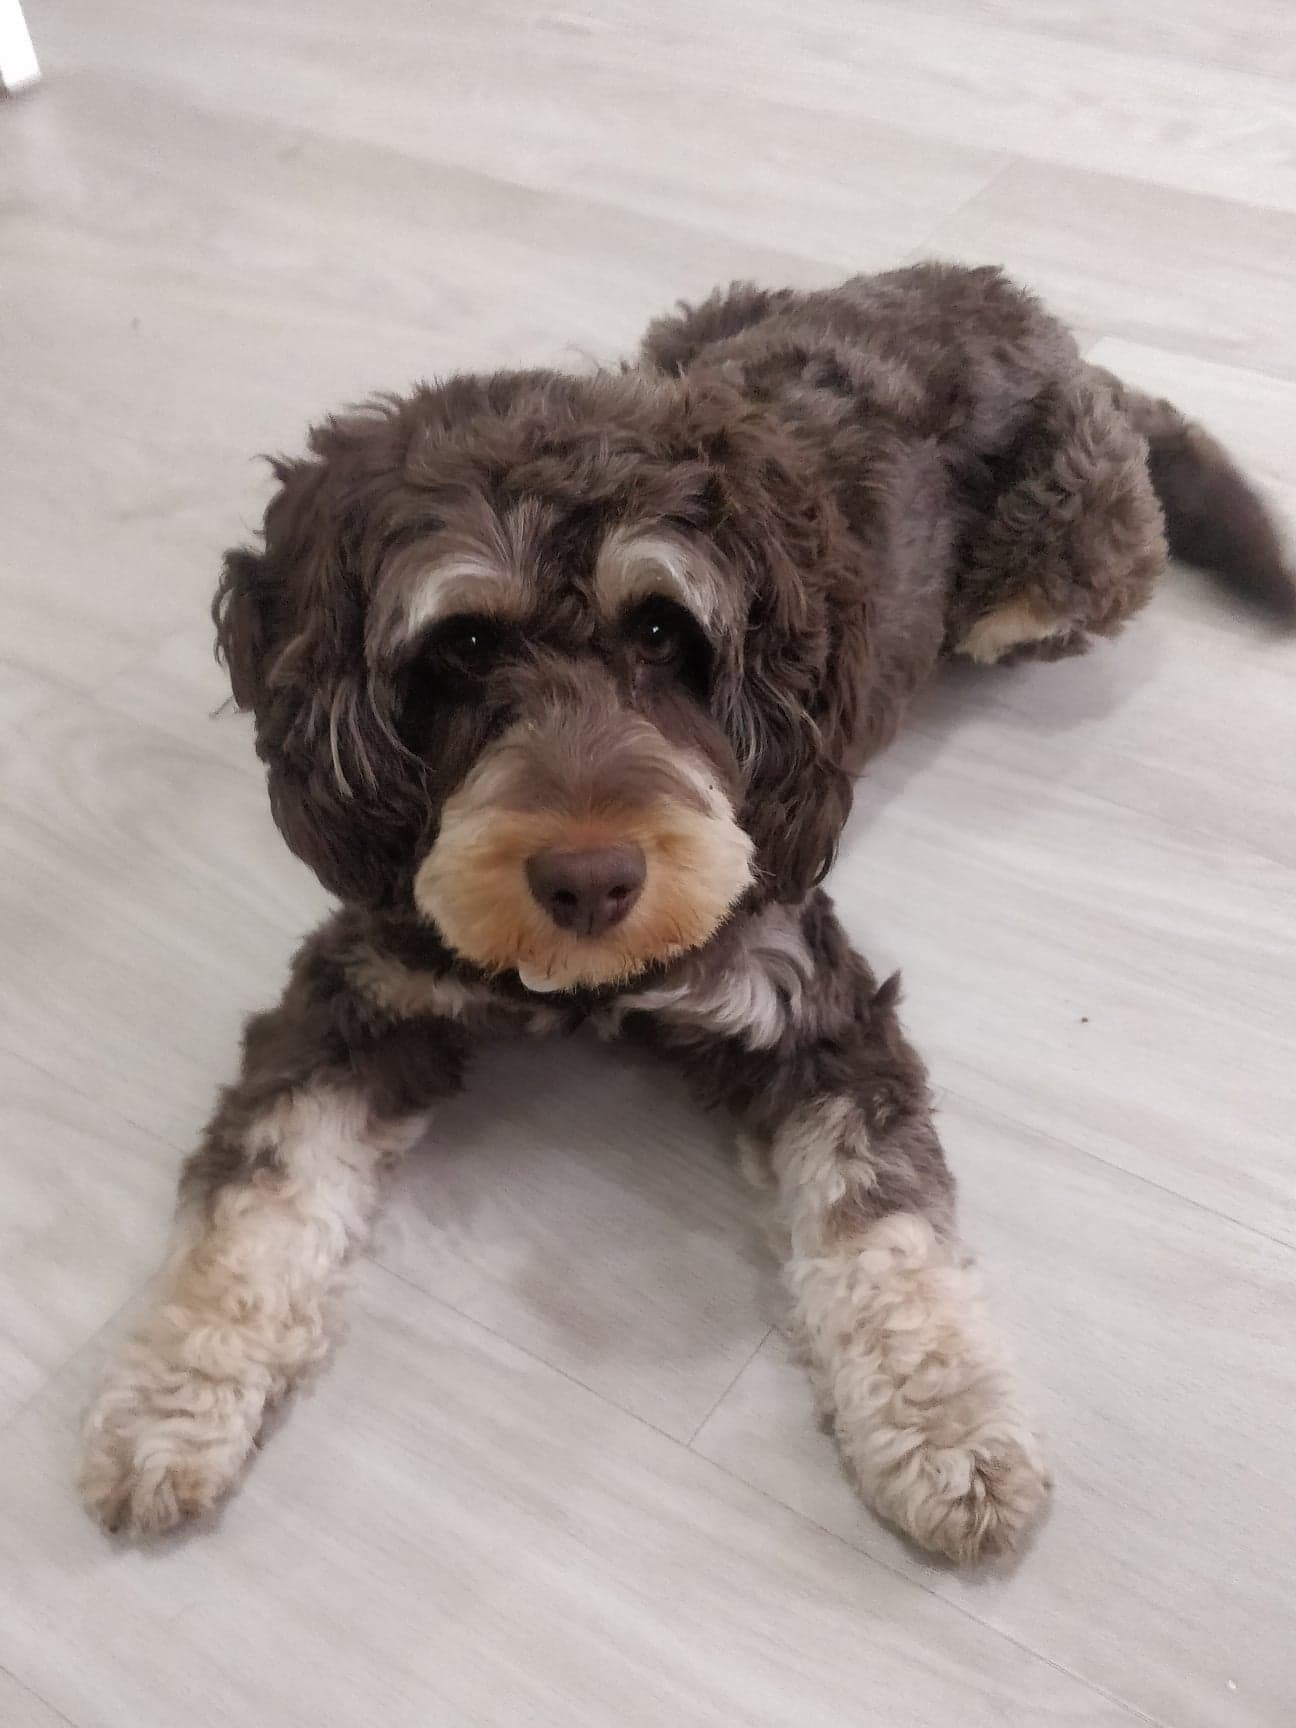 Cockapoo doing dog training and learning to lie down on command